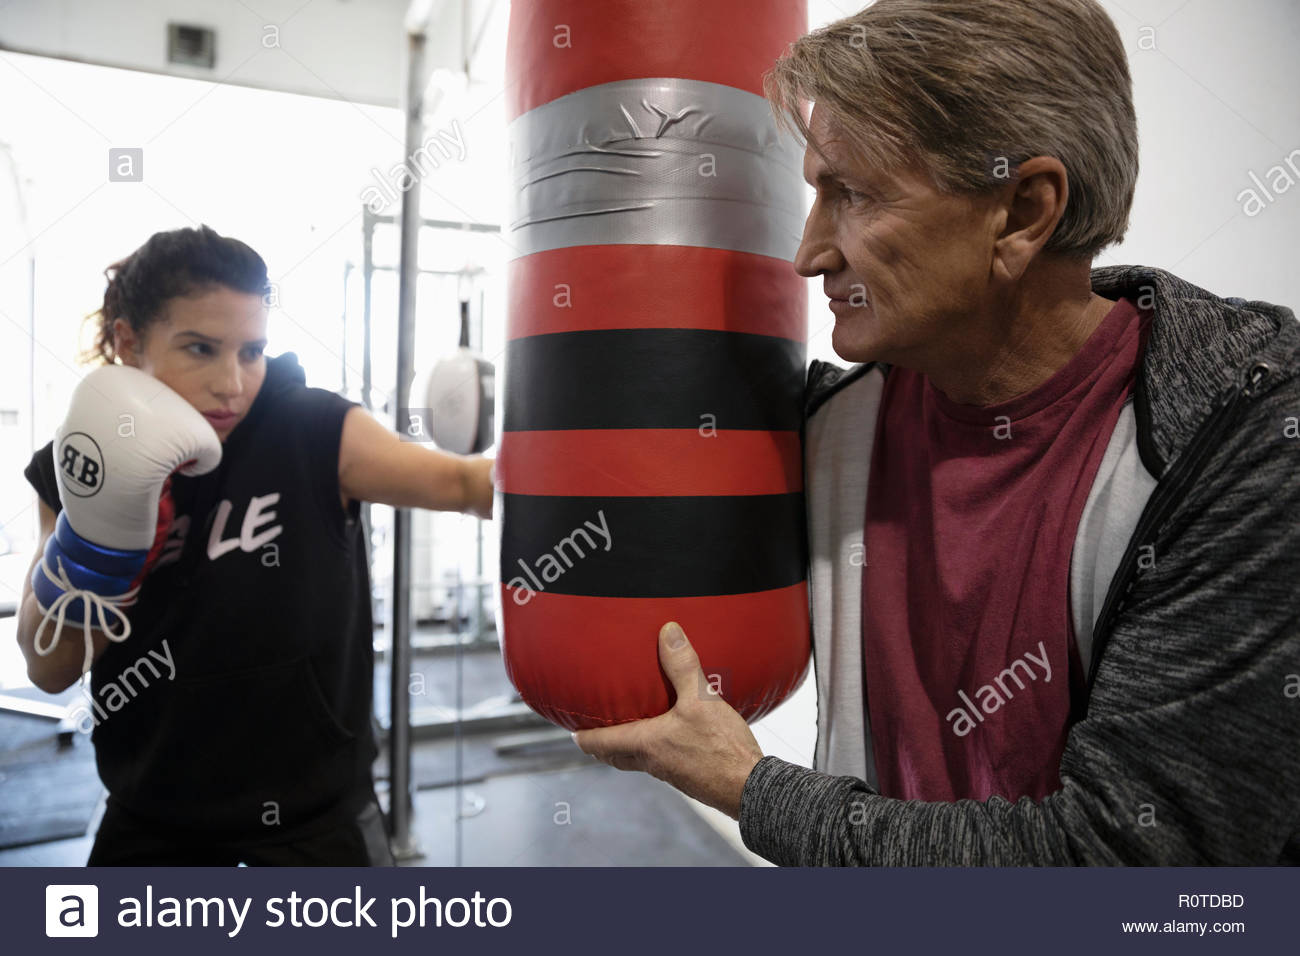 Trainer holding punching bag for female boxer training in gym - Stock Image